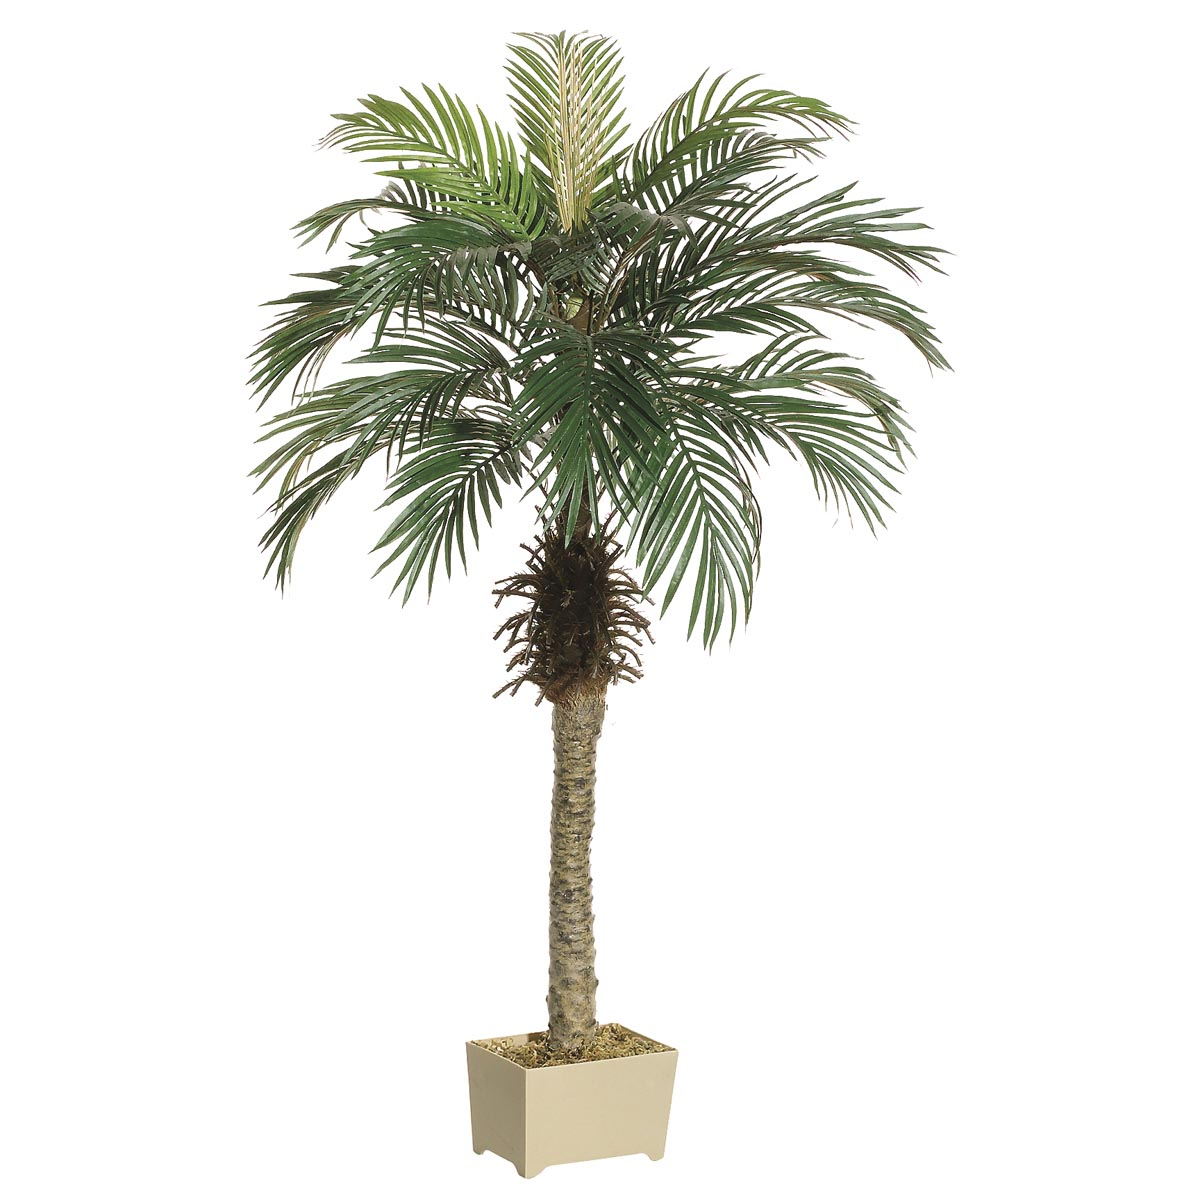 4.5 Foot Phoenix Palm Tree In Decorative Pot